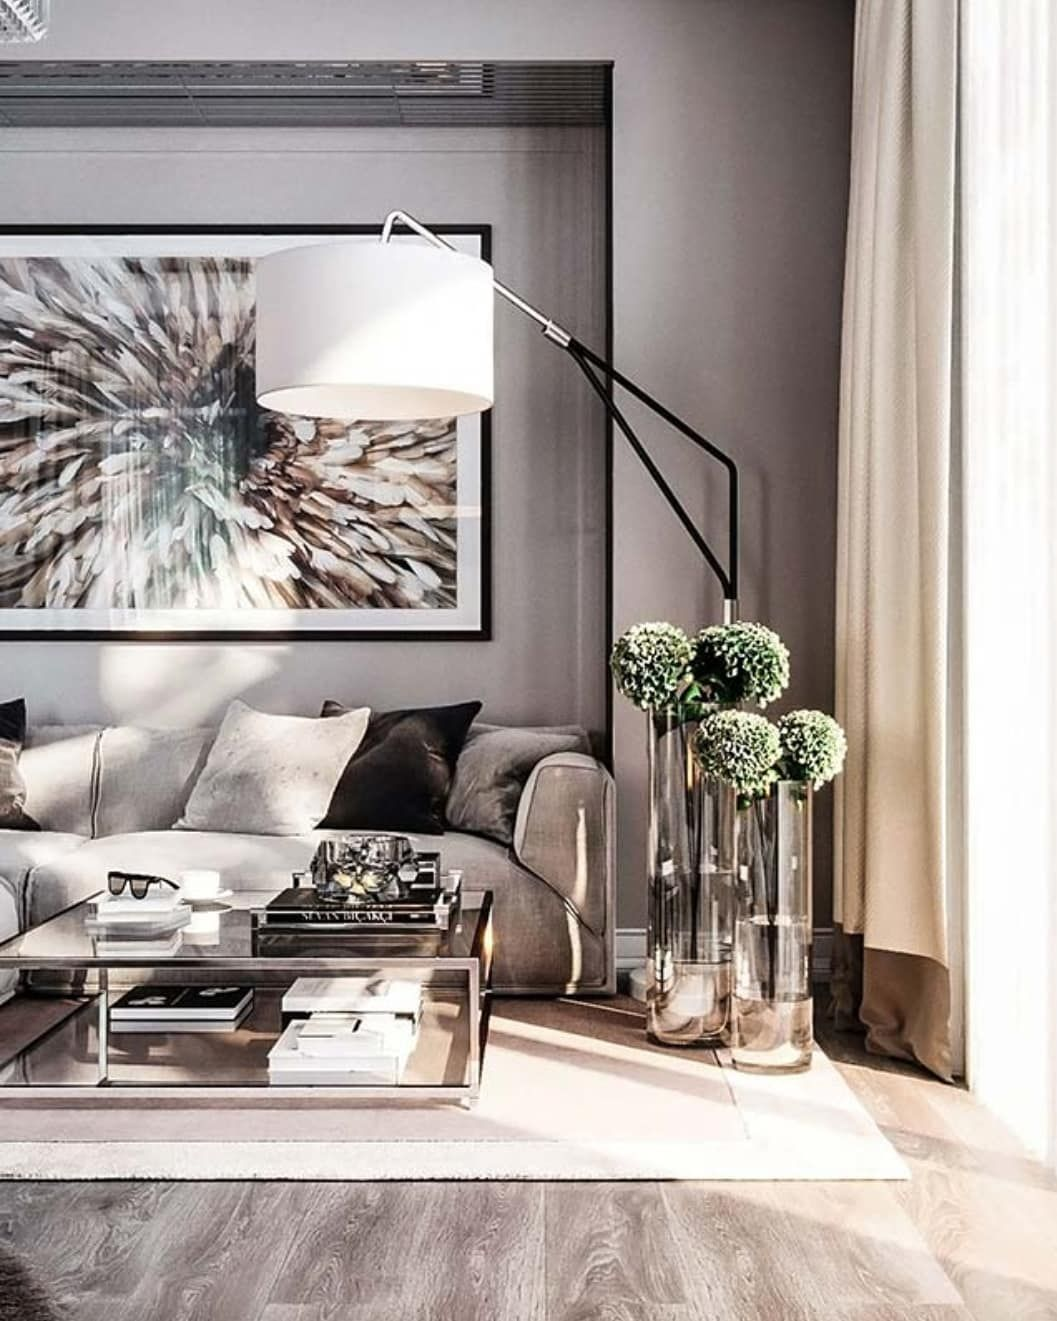 New The 10 Best Home Decor With Pictures Chique E O Que